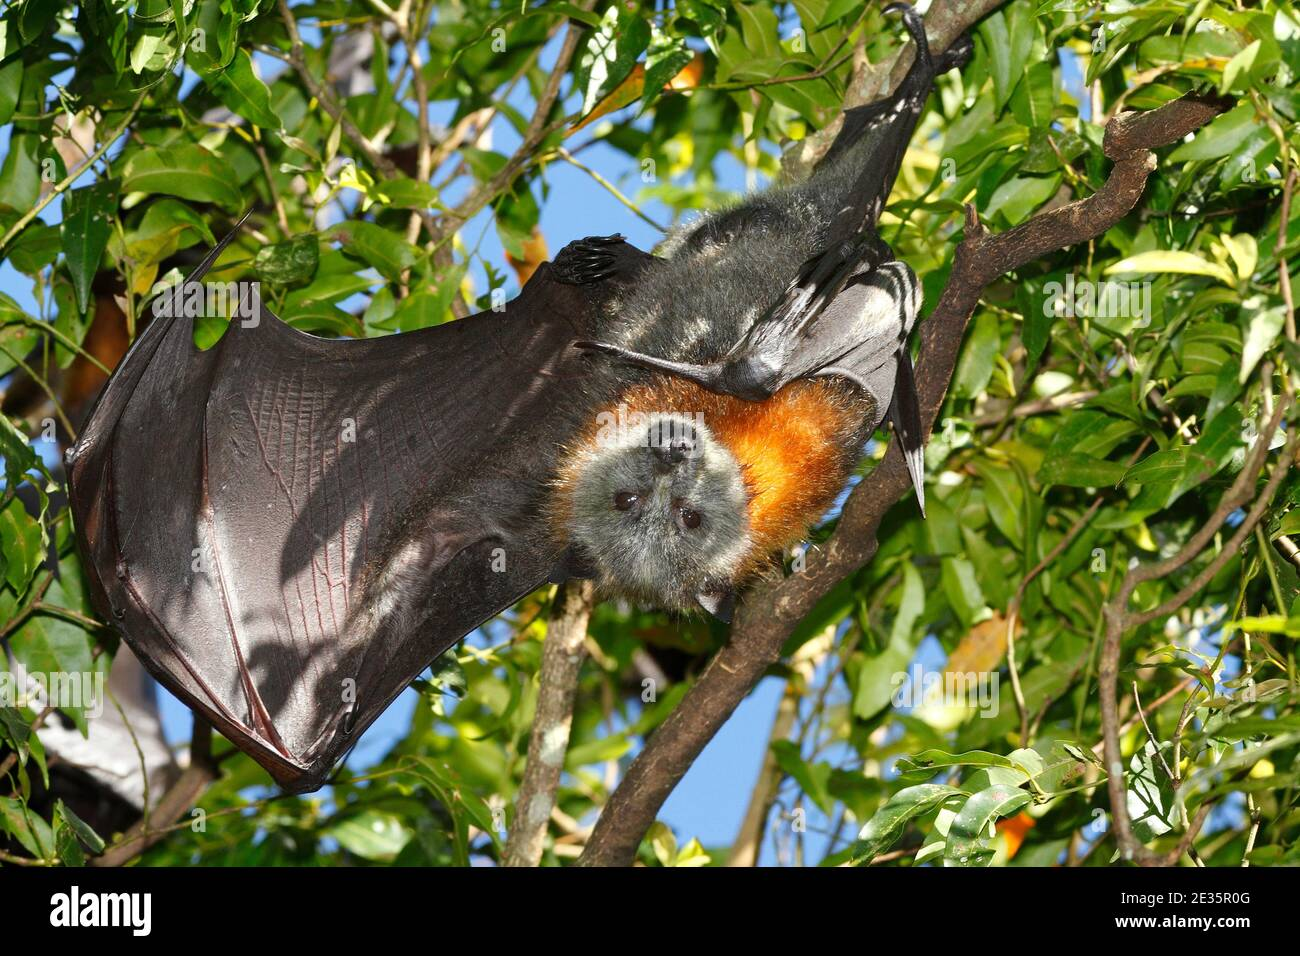 grey-headed-flying-fox-pteropus-poliocephalus-with-wing-open-hanging-from-a-branch-vulnerable-species-see-below-2E35R0G.jpg